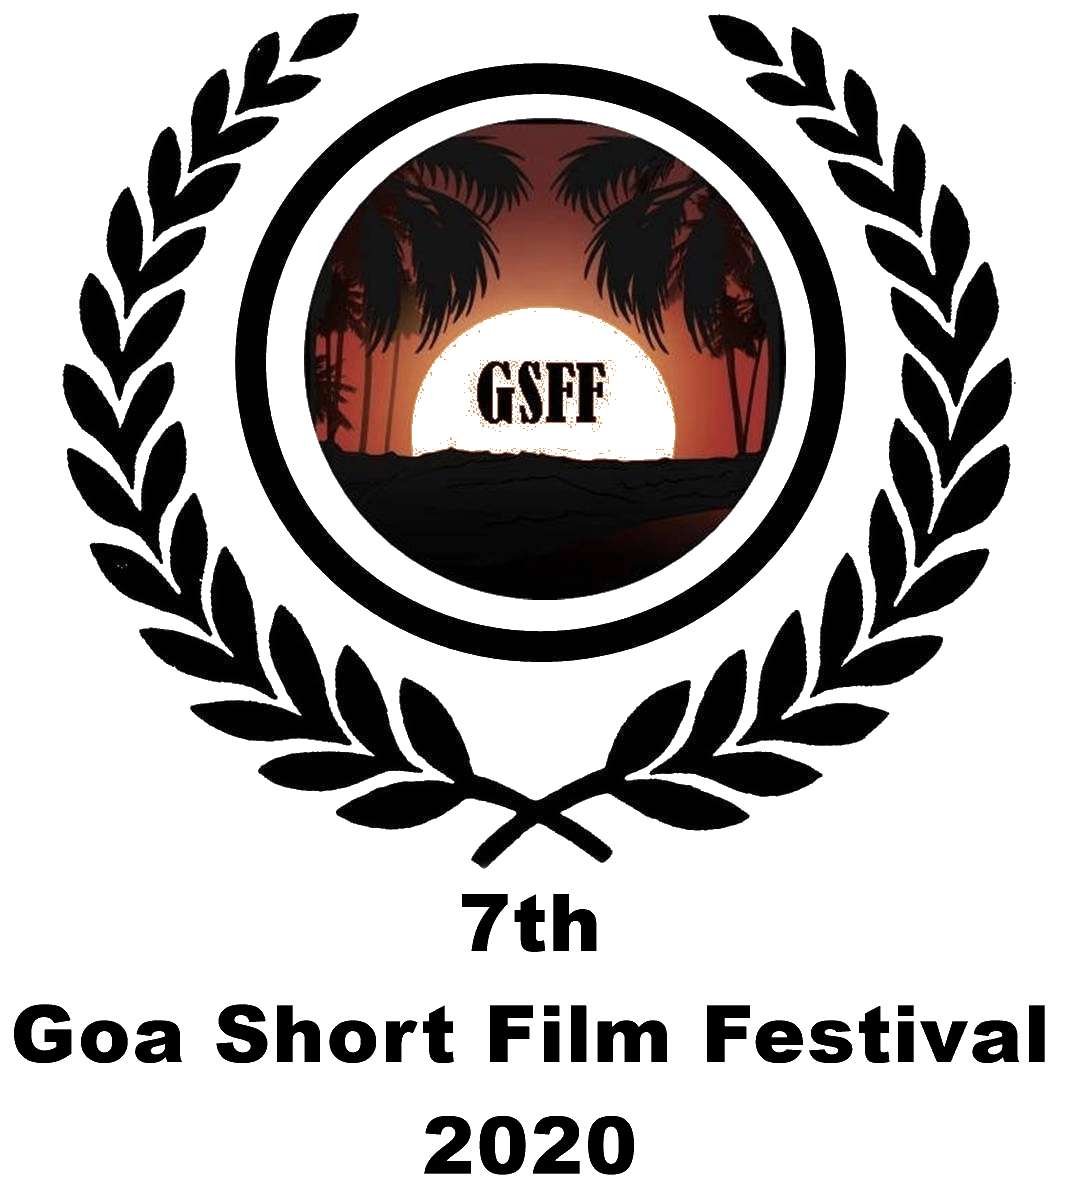 7 GSFF LOGO TRANSPARENT - Contact From The 3rd Story Productions ltd here